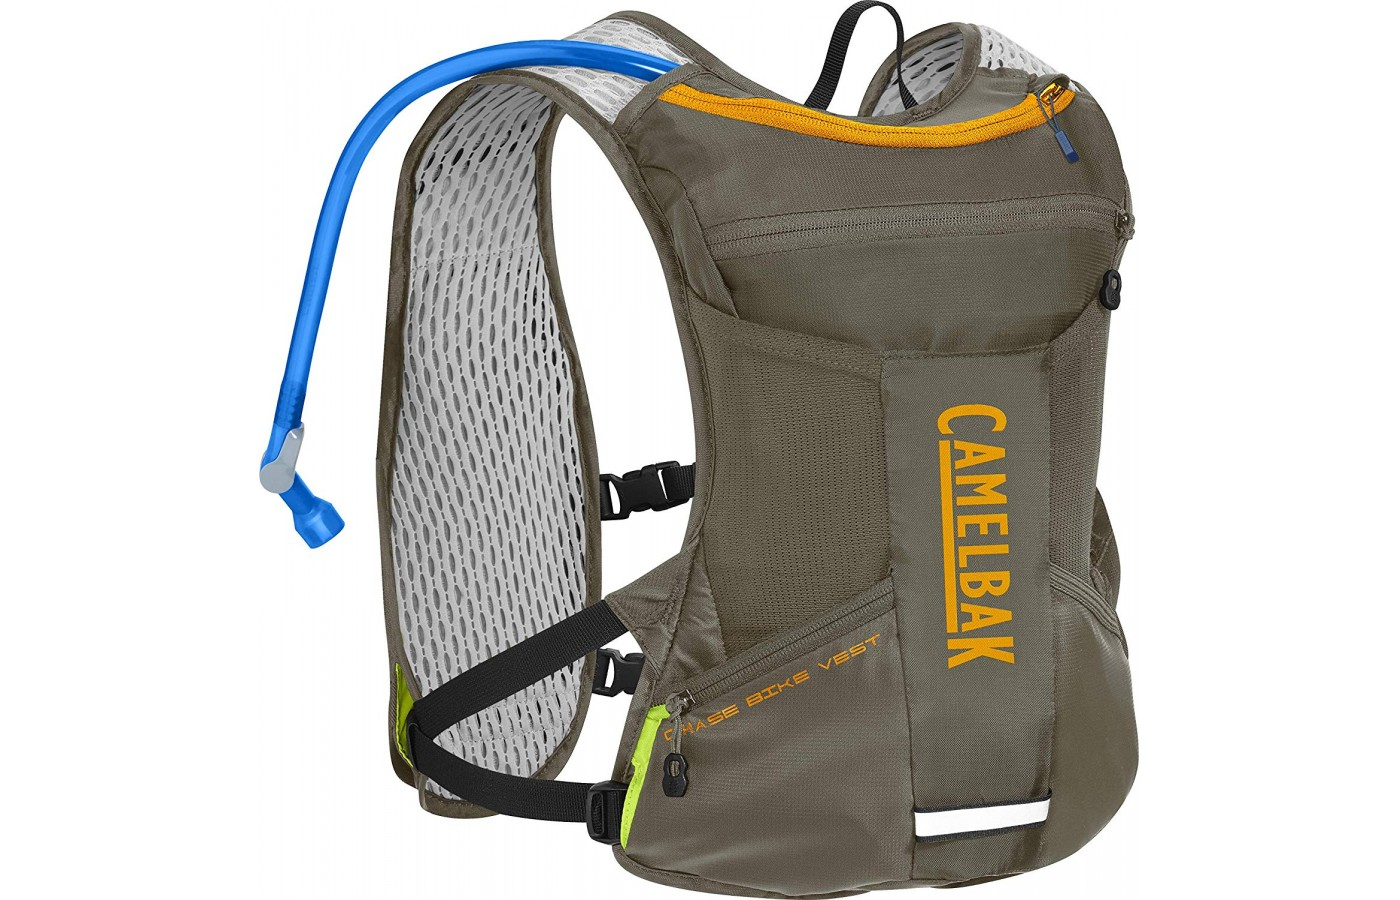 The Camelbak has mesh lining, as seen here.